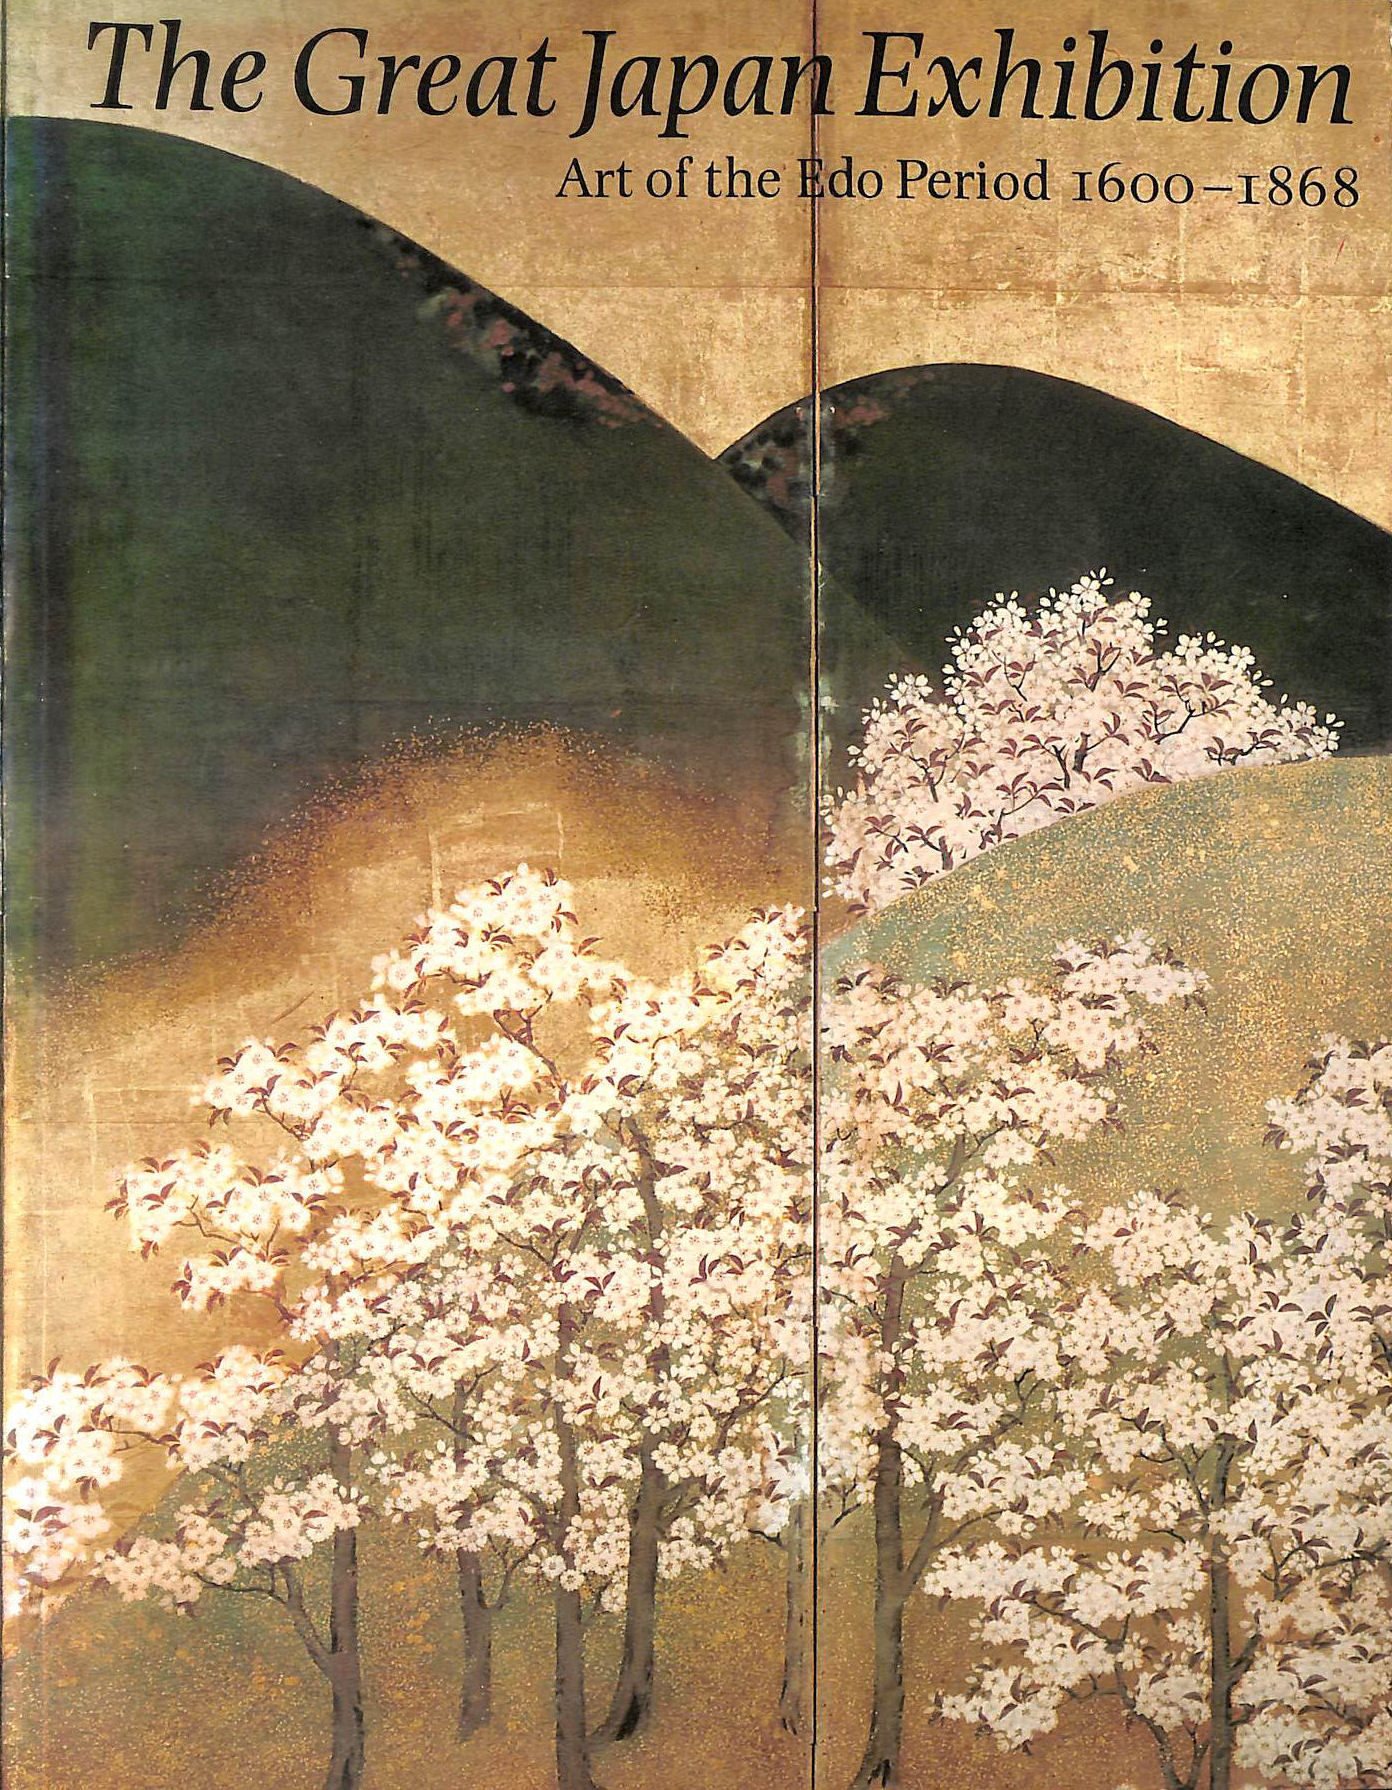 Image for The Great Japan Exhibition. Art of the Edo Period 1600-1868.